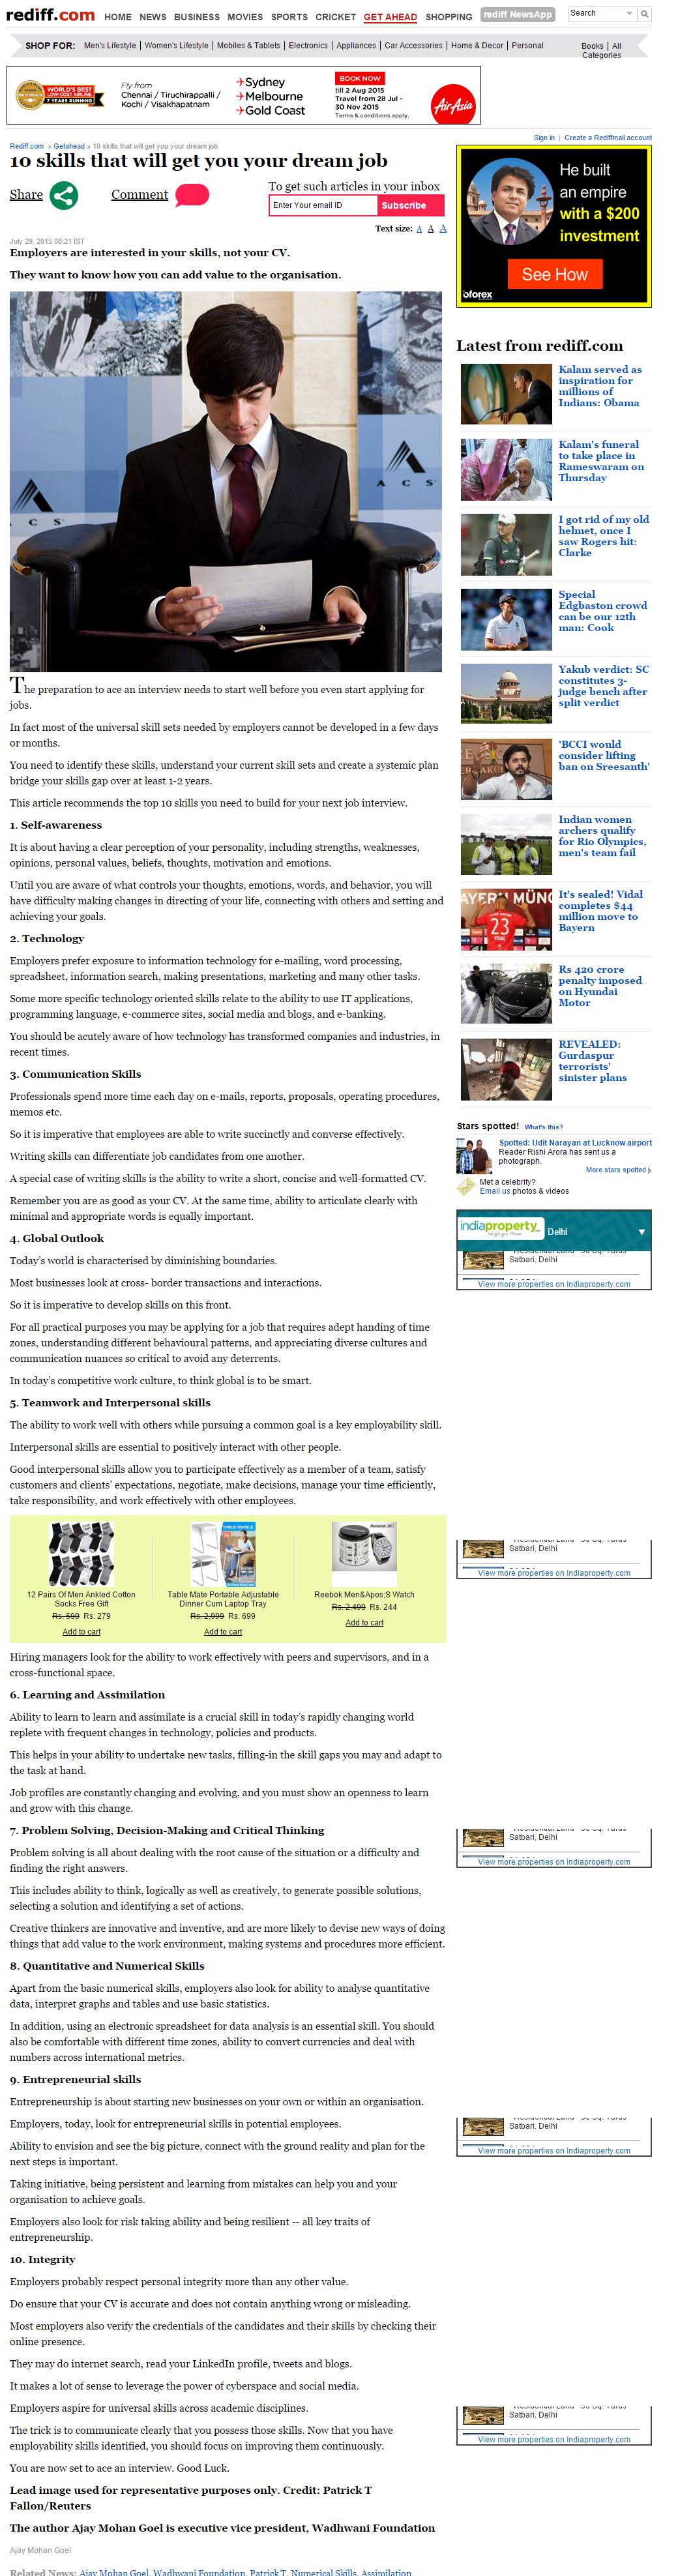 Rediff - Article PDF